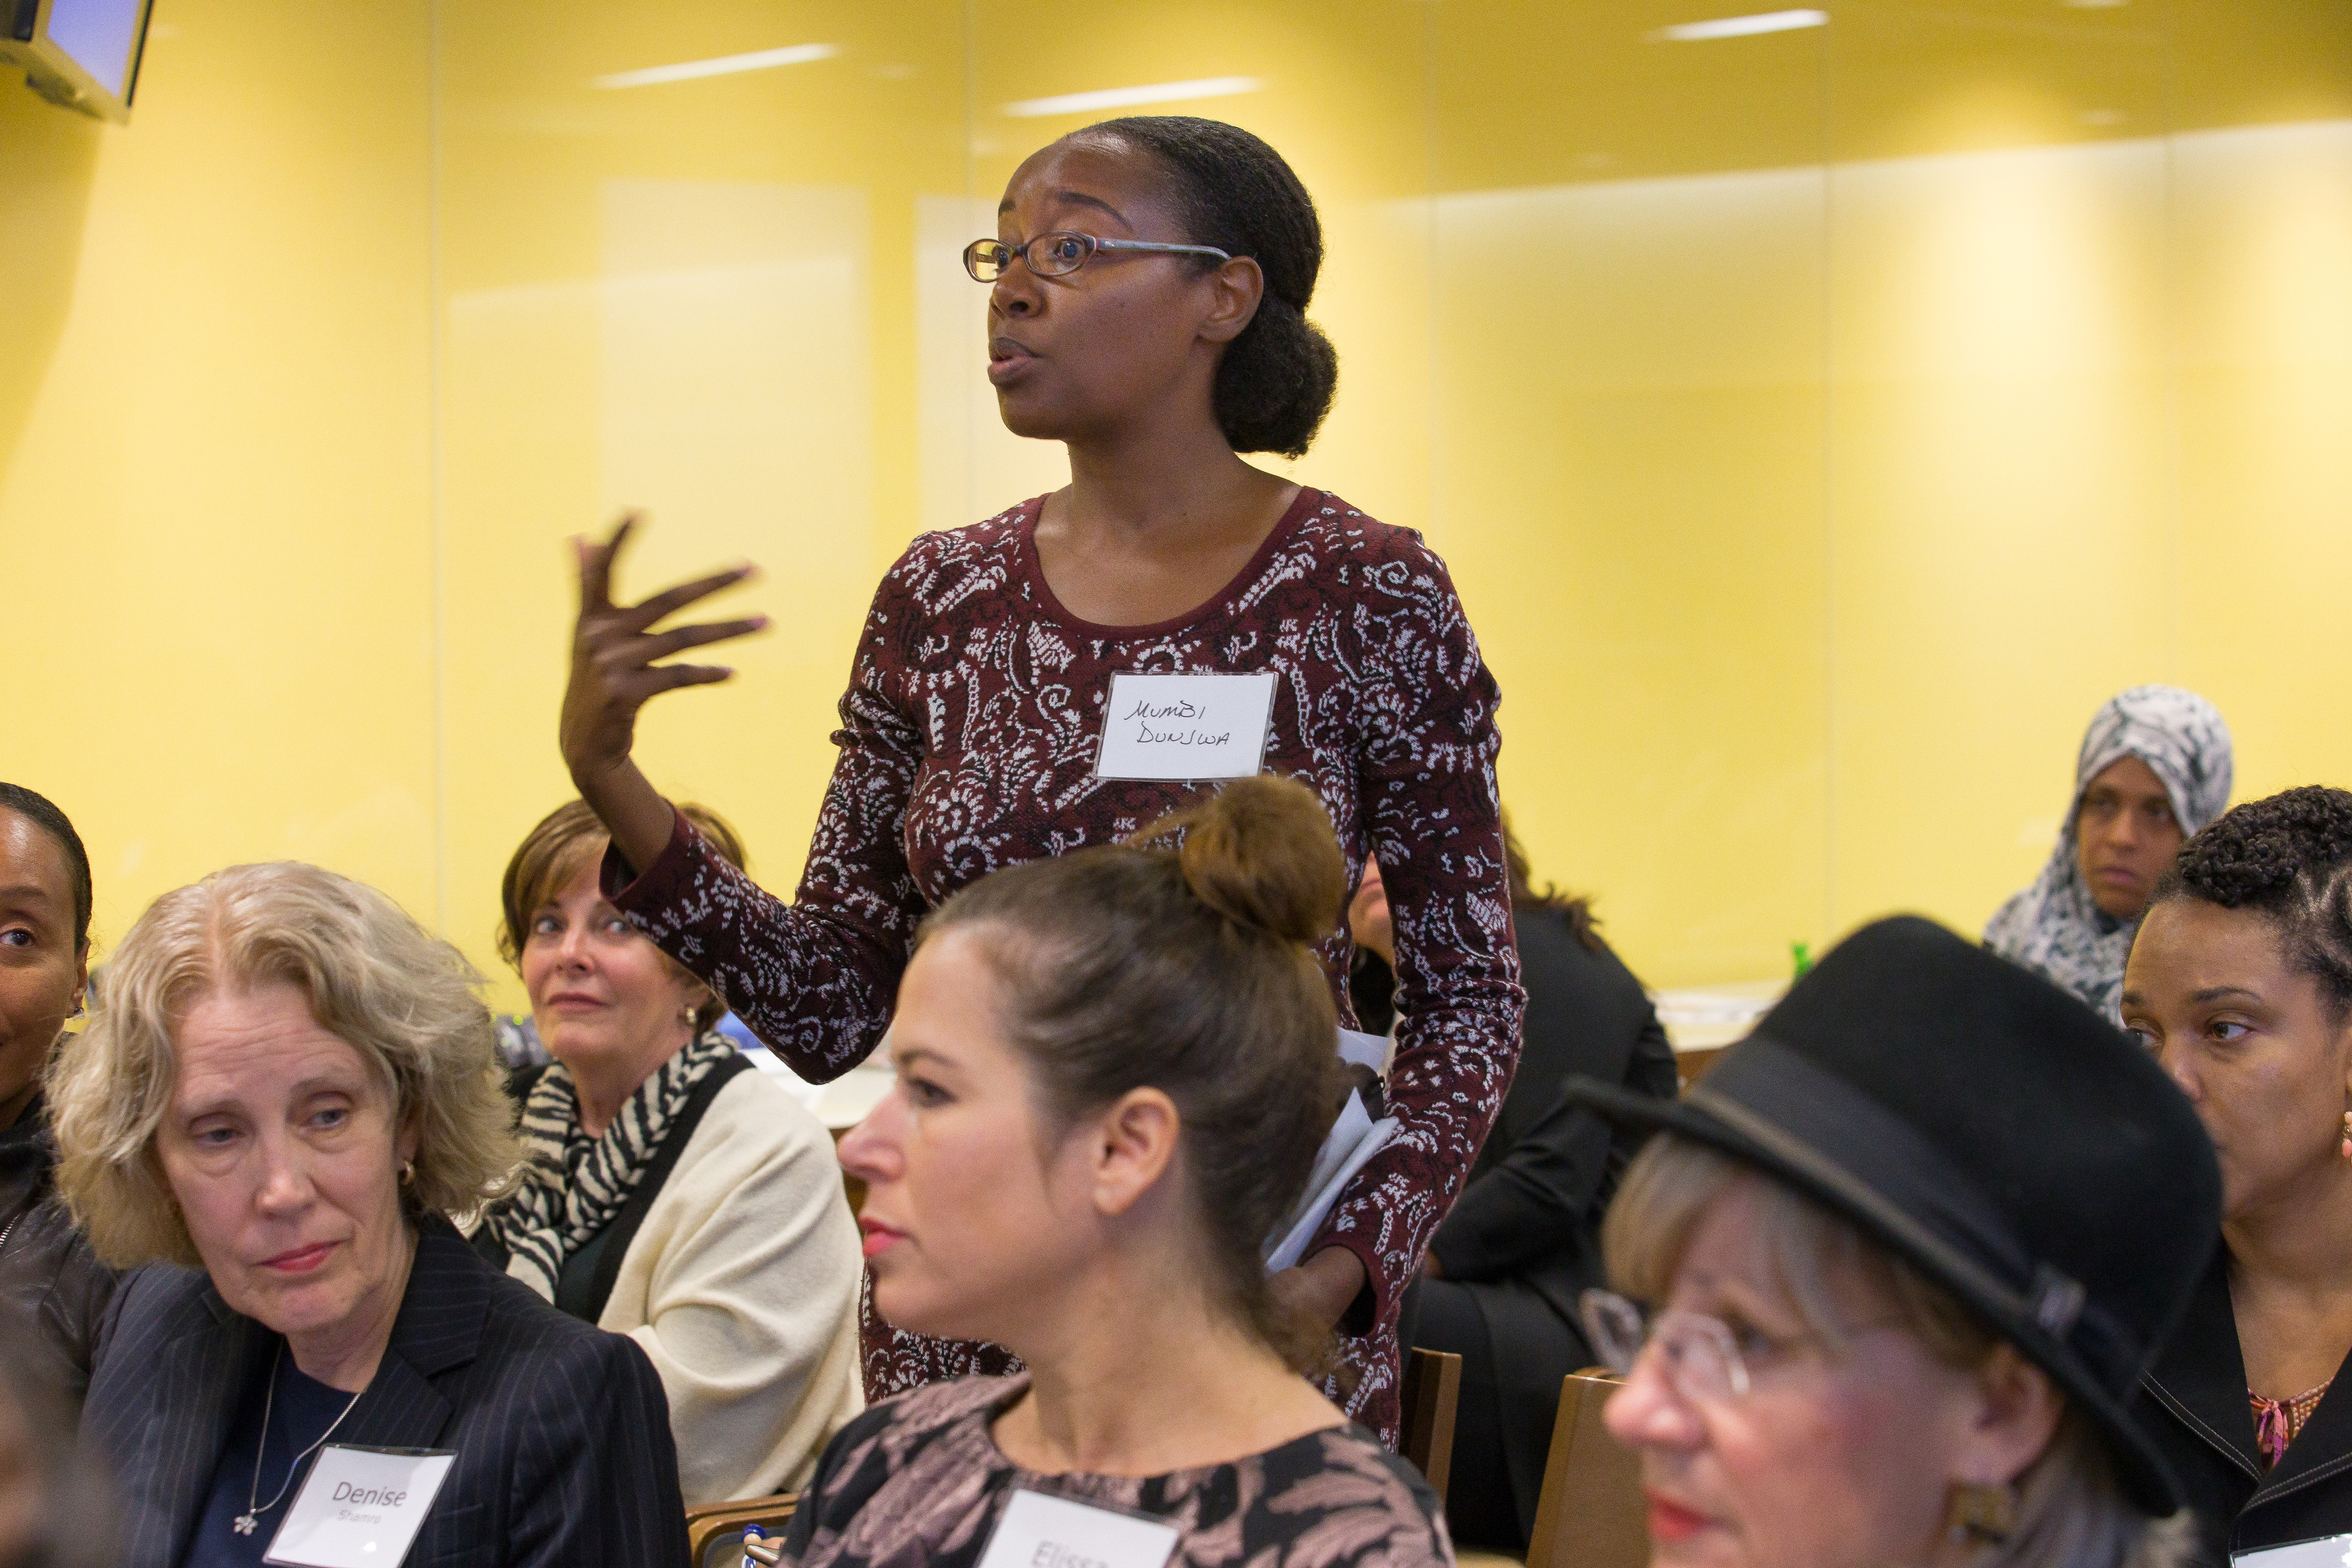 Mumbi Dunjwa, founder and CEO of Naturaz hair care, asks a question during the Women Raising Capital conference, a rare female-focused event in the world of start-up financing. JESSICA GRIFFIN / Staff Photographer .